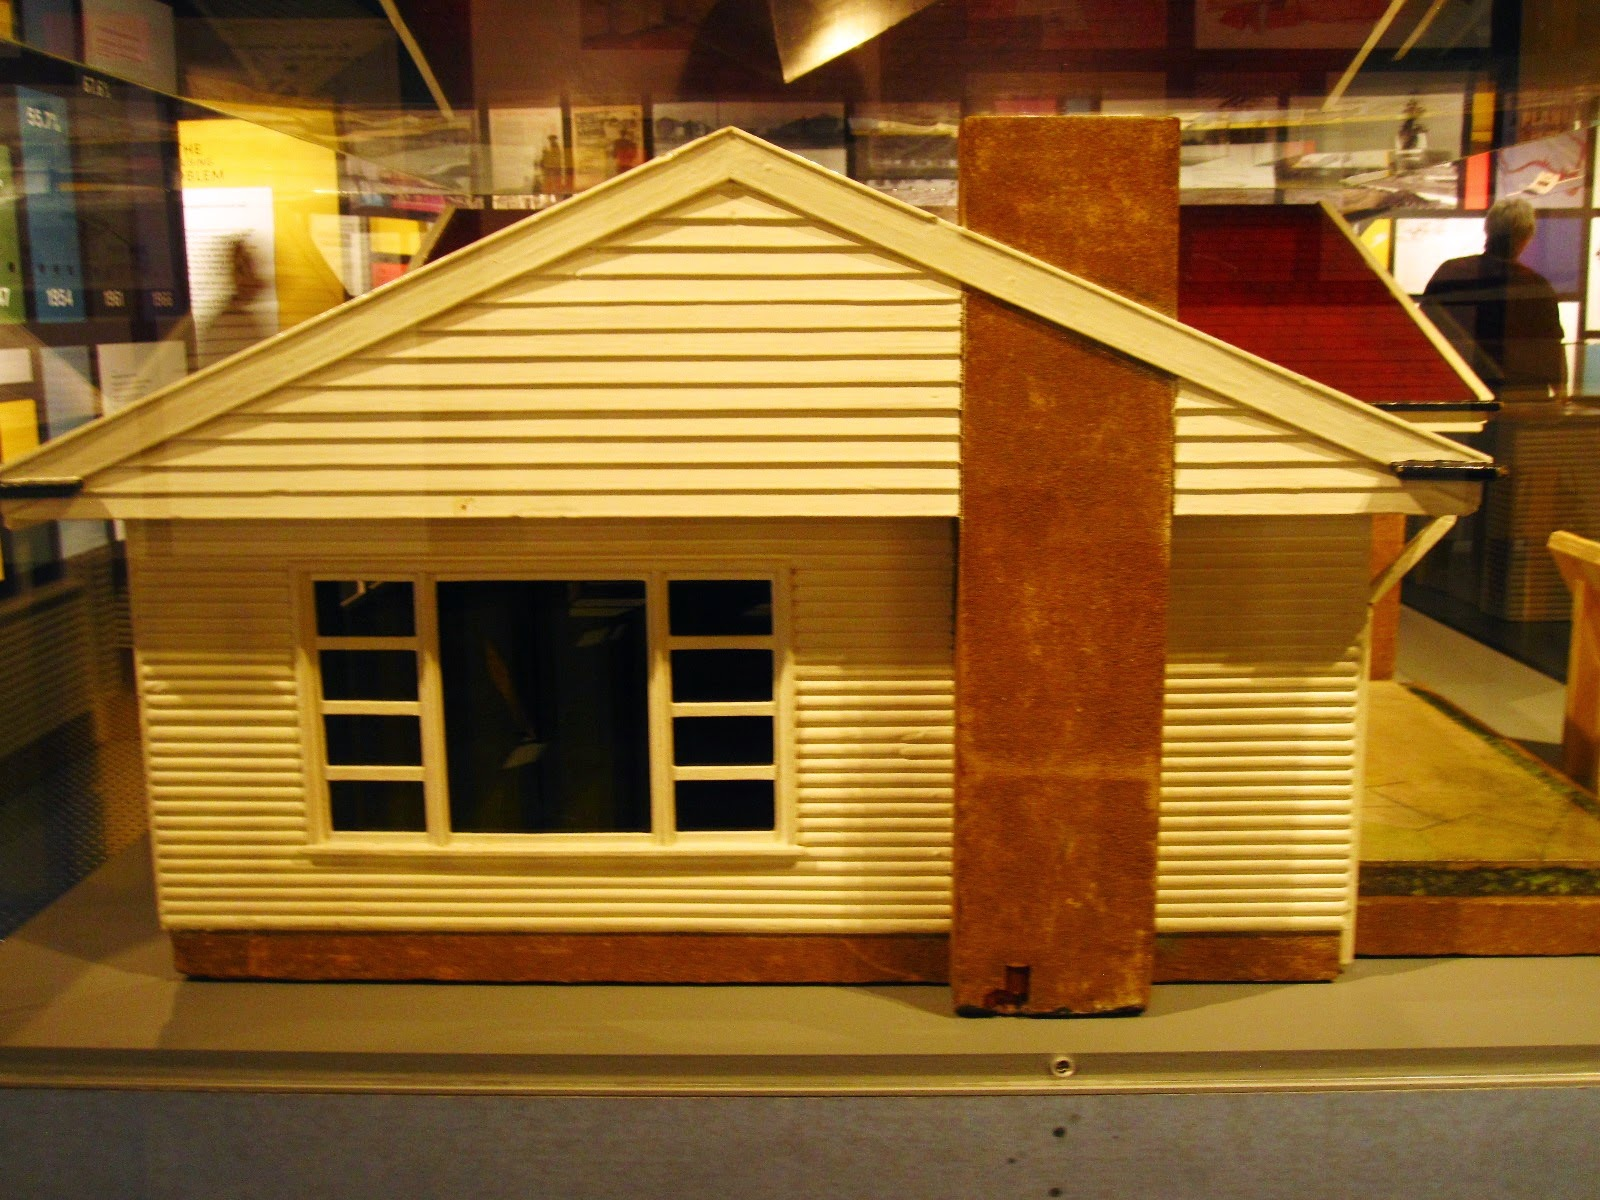 Side view of the model 'St Ives' house in the exhibition 'Dream Home Small Home'